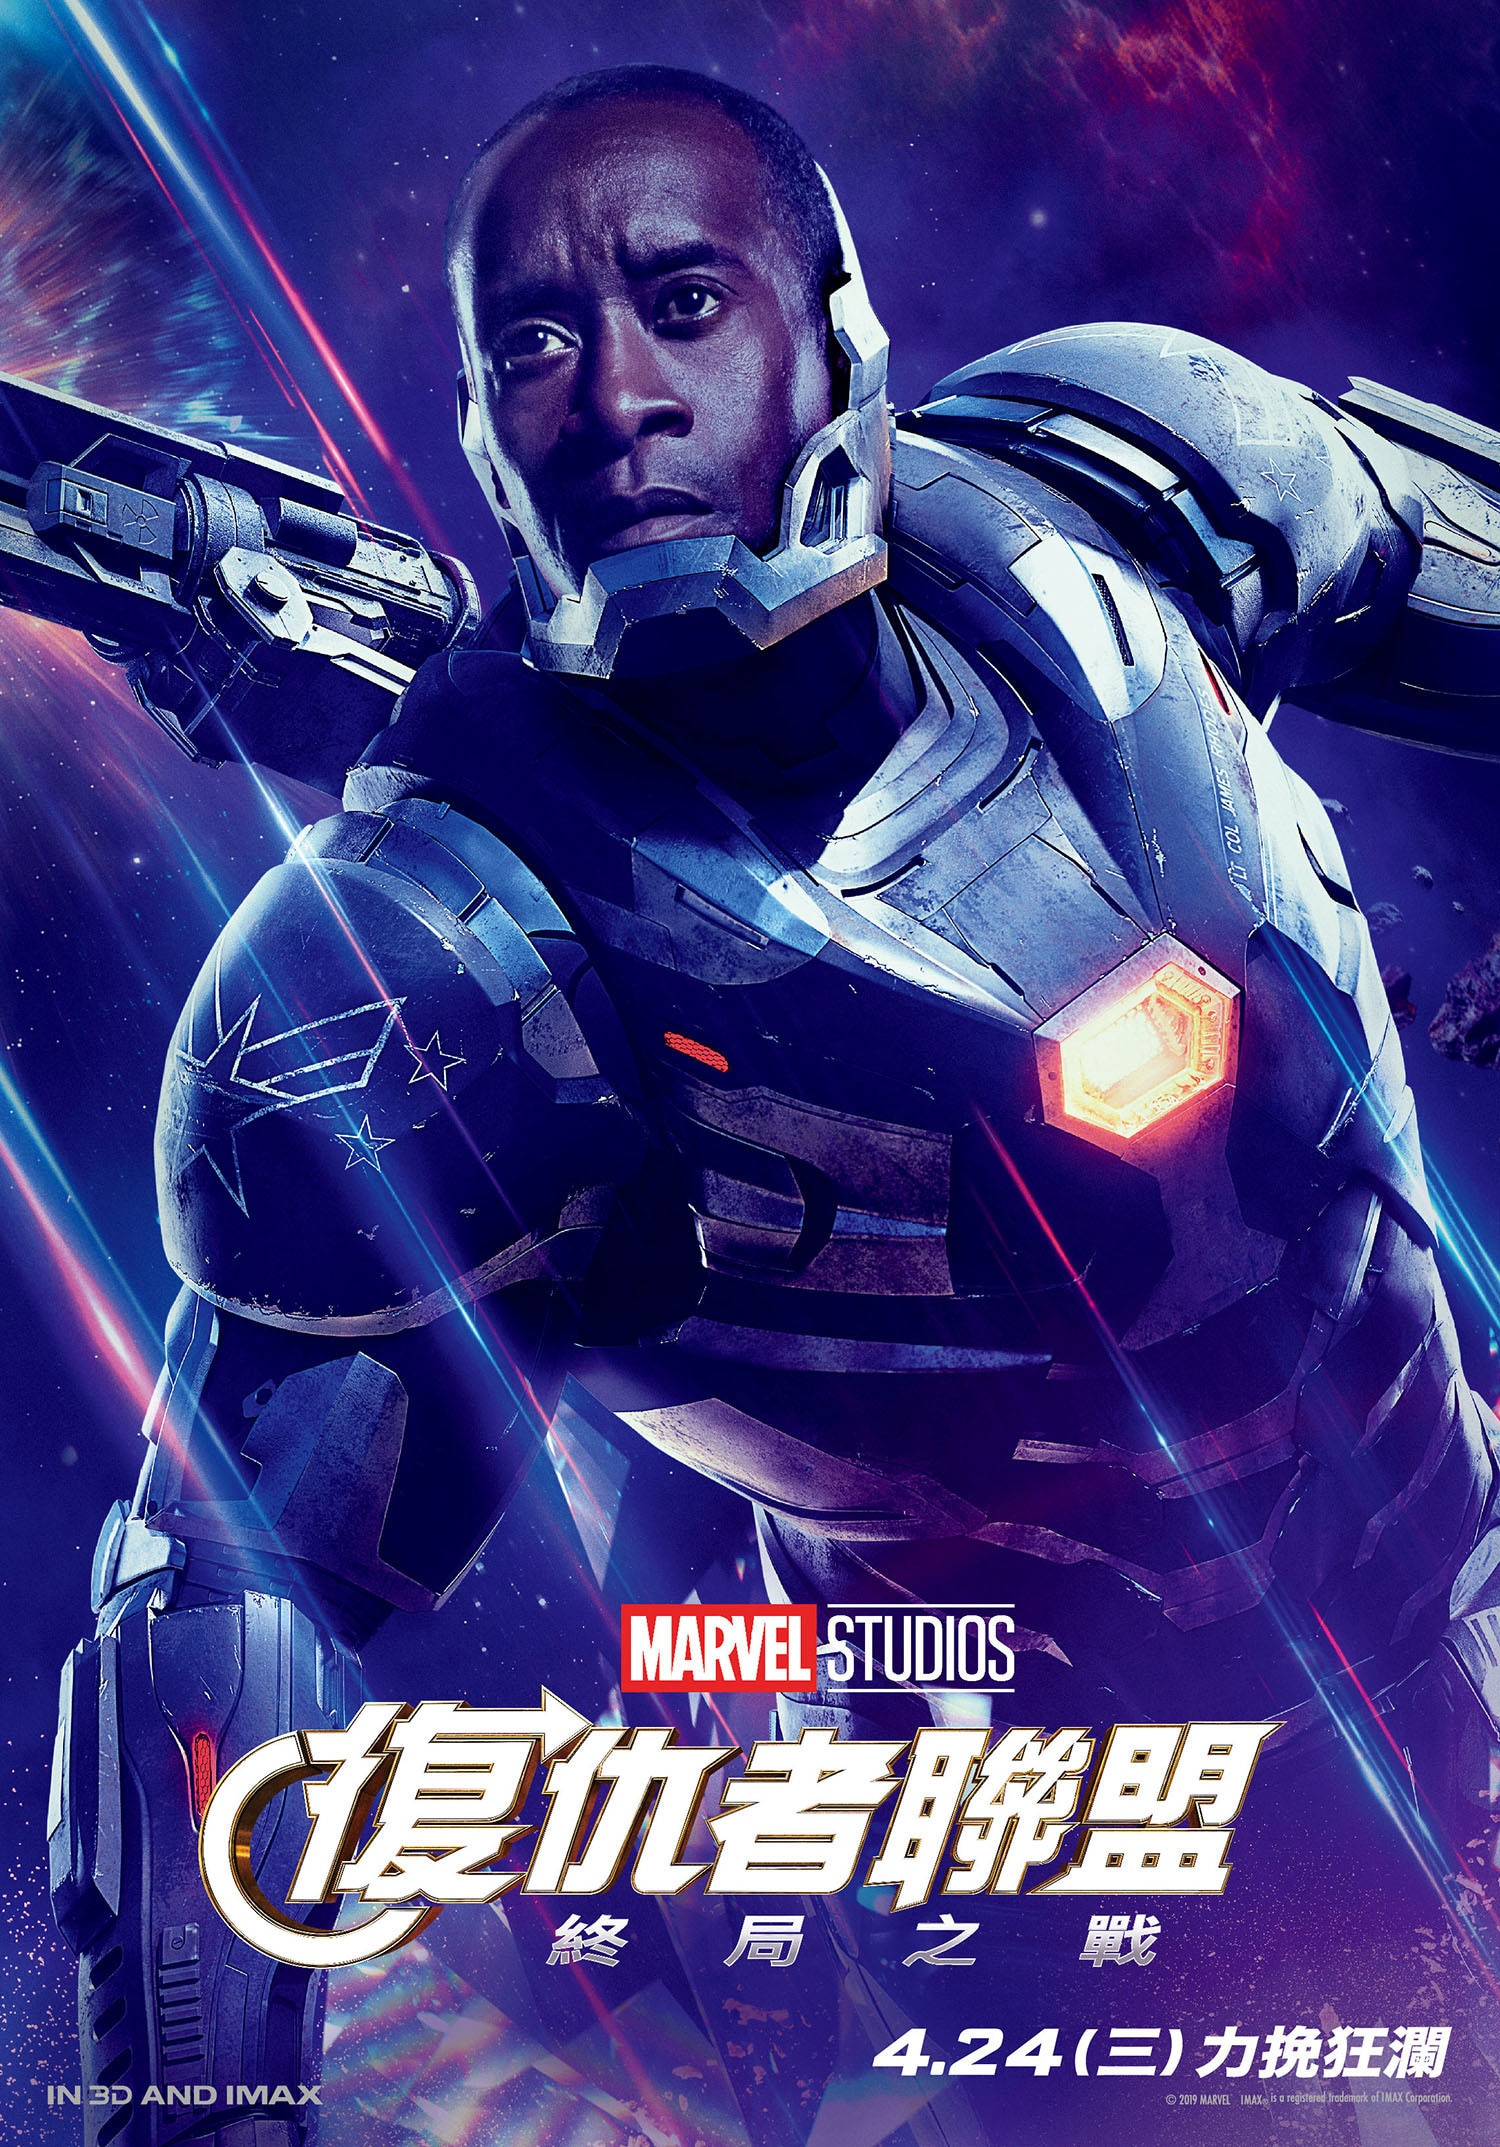 Avengers:End Game - War Machine